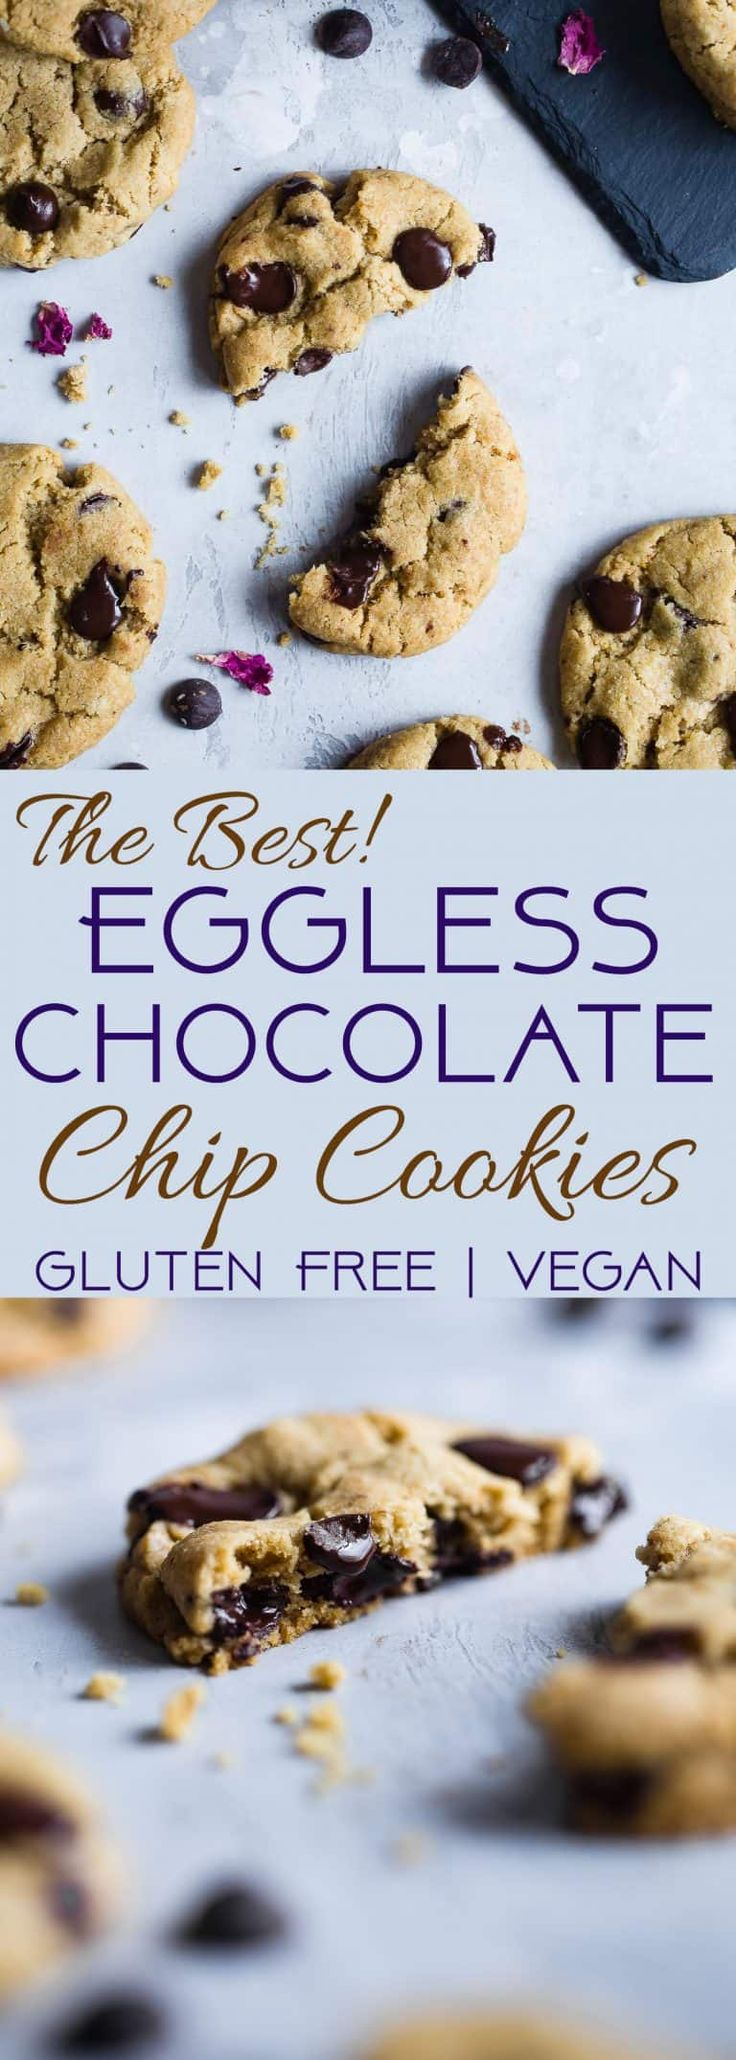 The BEST Eggless Chocolate Chip Cookies - SO chewy on the inside, crispy on the outside and secretly gluten free, with a dairy free and vegan option! The only chocolate chip cookie recipe you well ever need!   #Foodfaithfitness   #Glutenfree #Vegan #Healthy #Cookies #EggFree